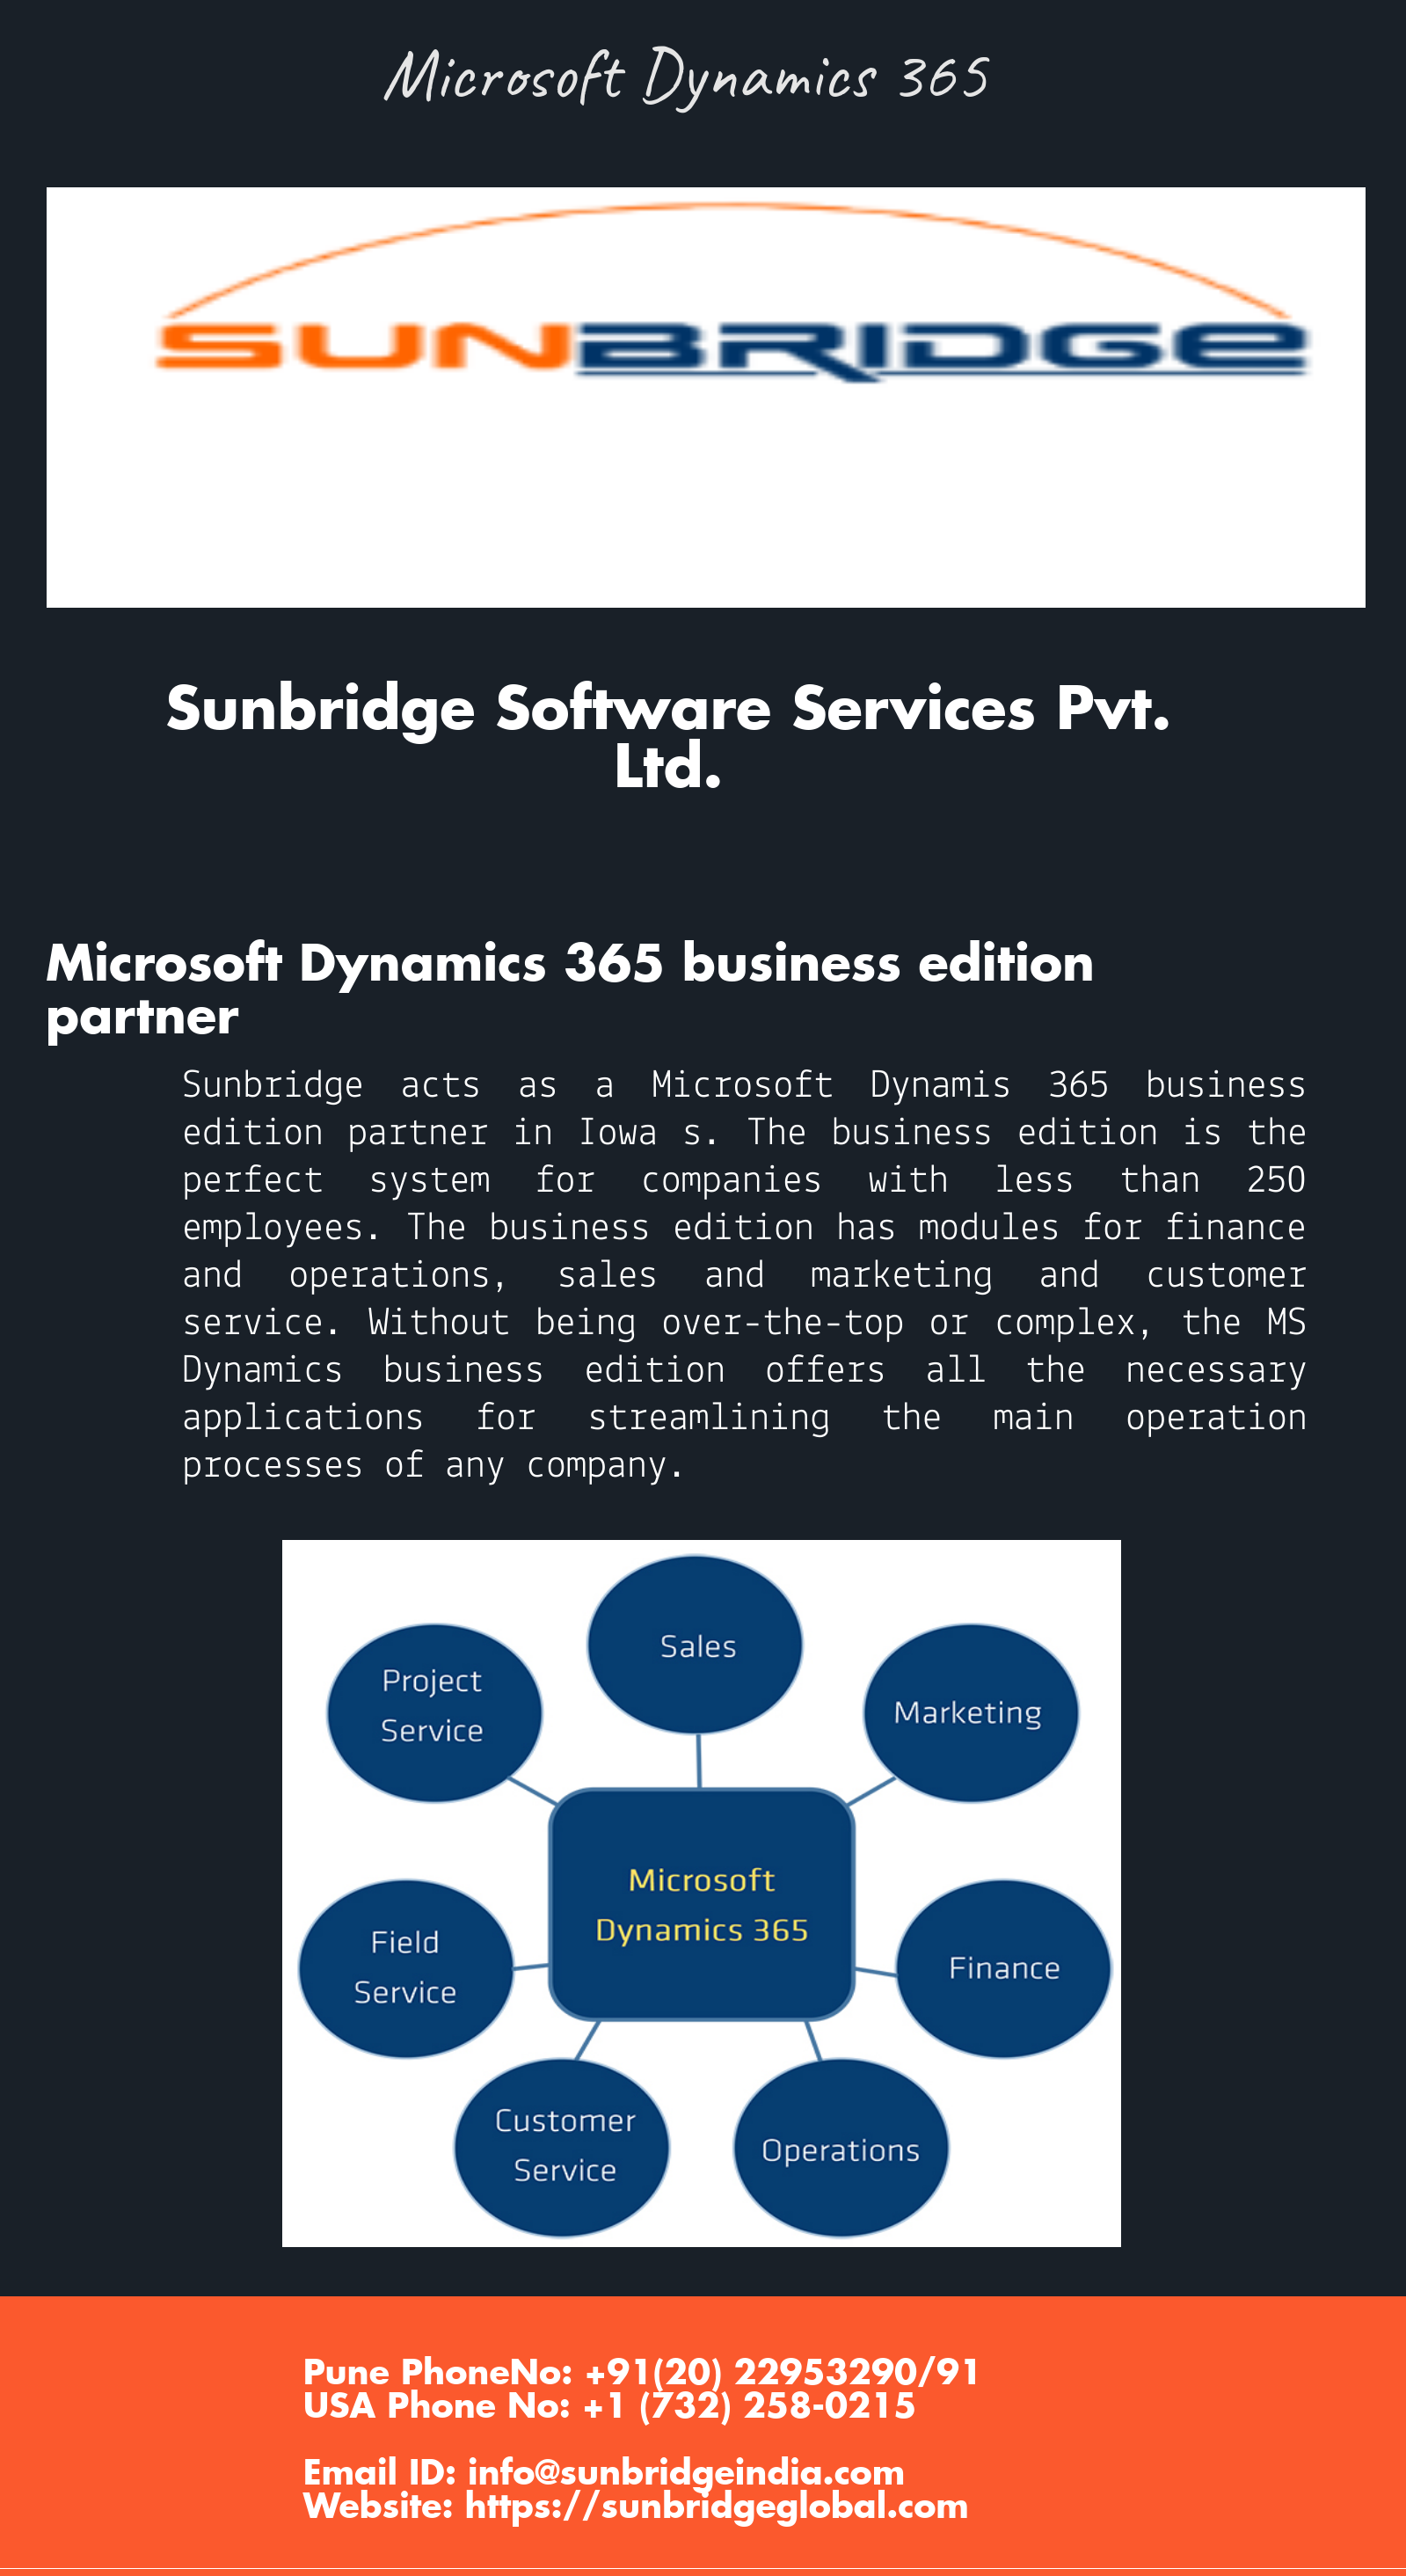 Sunbridge acts as a Microsoft Dynamis 365 business edition